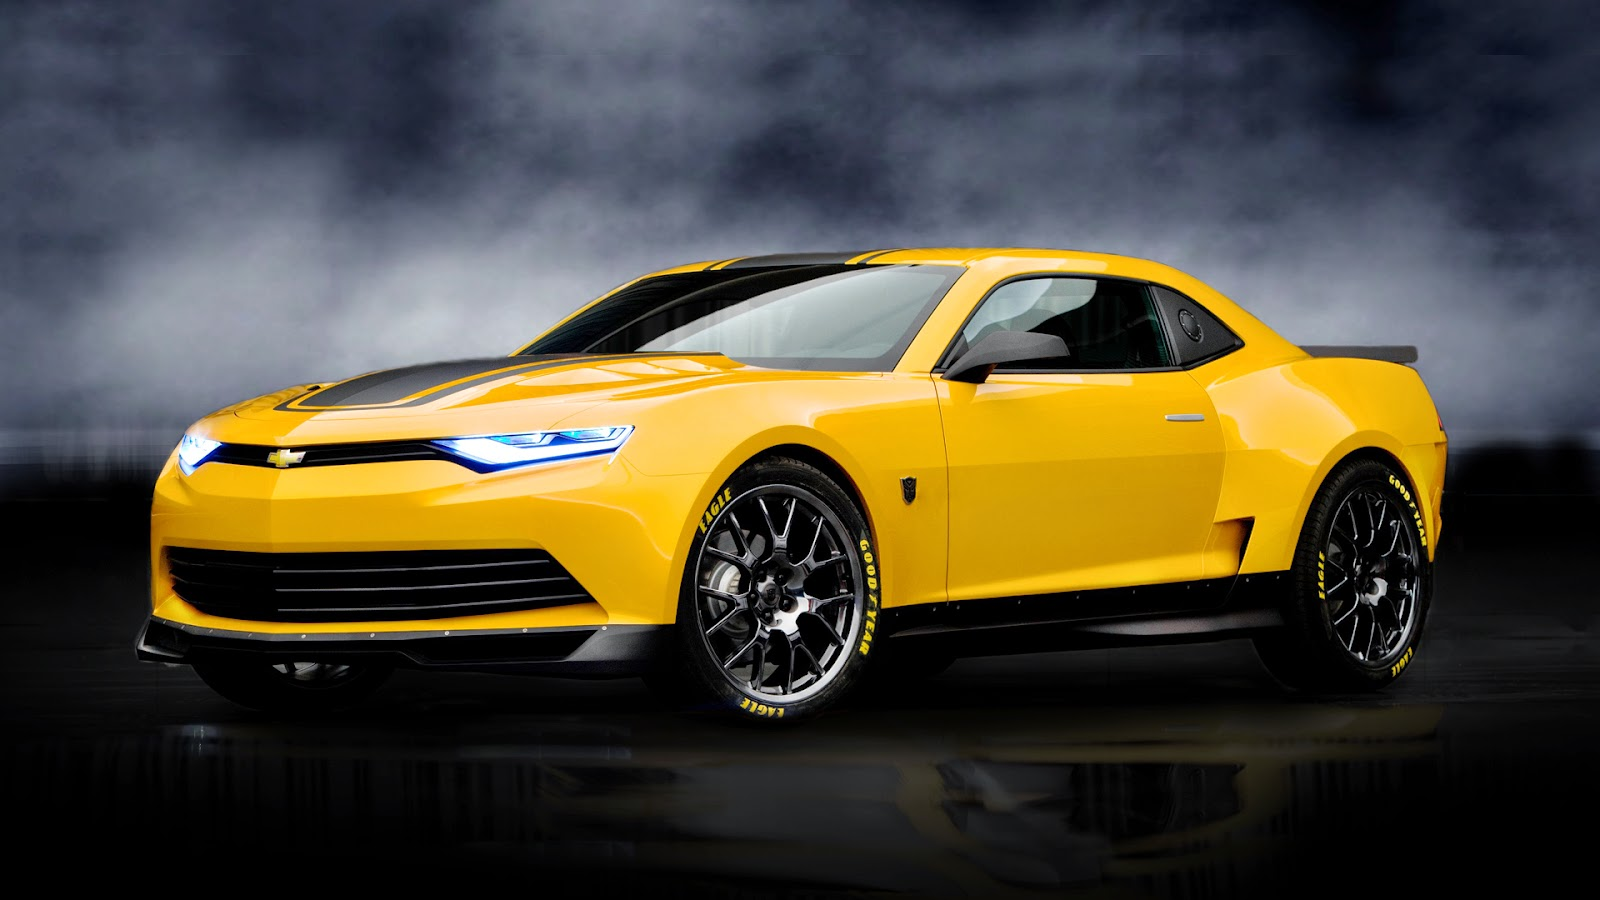 Transformers Makes Chevy Camaro A Superhero